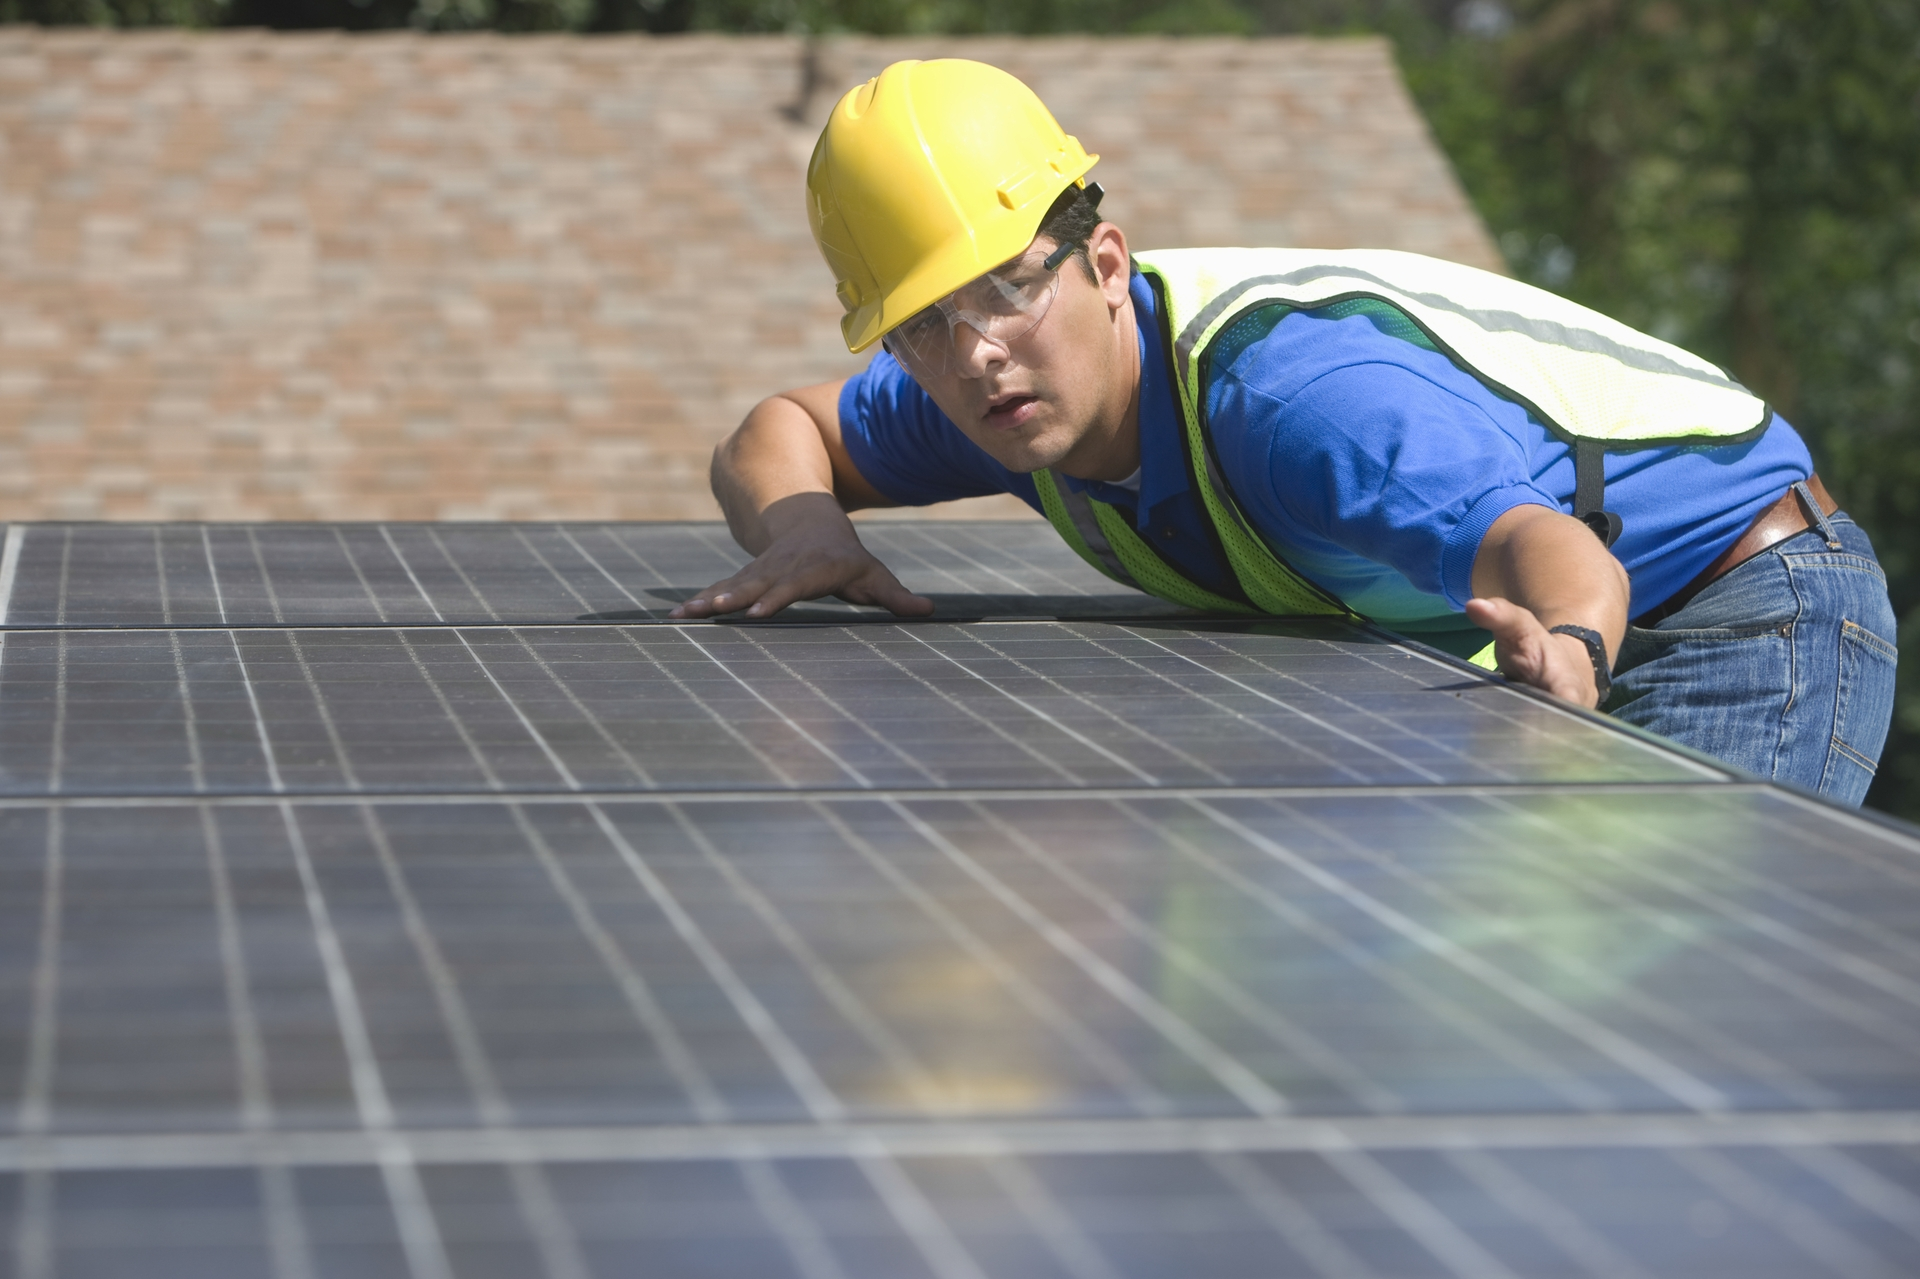 SCE's Marketplace features a solar service to help customers make more informed decisions when it comes to installing and financing a solar rooftop system.